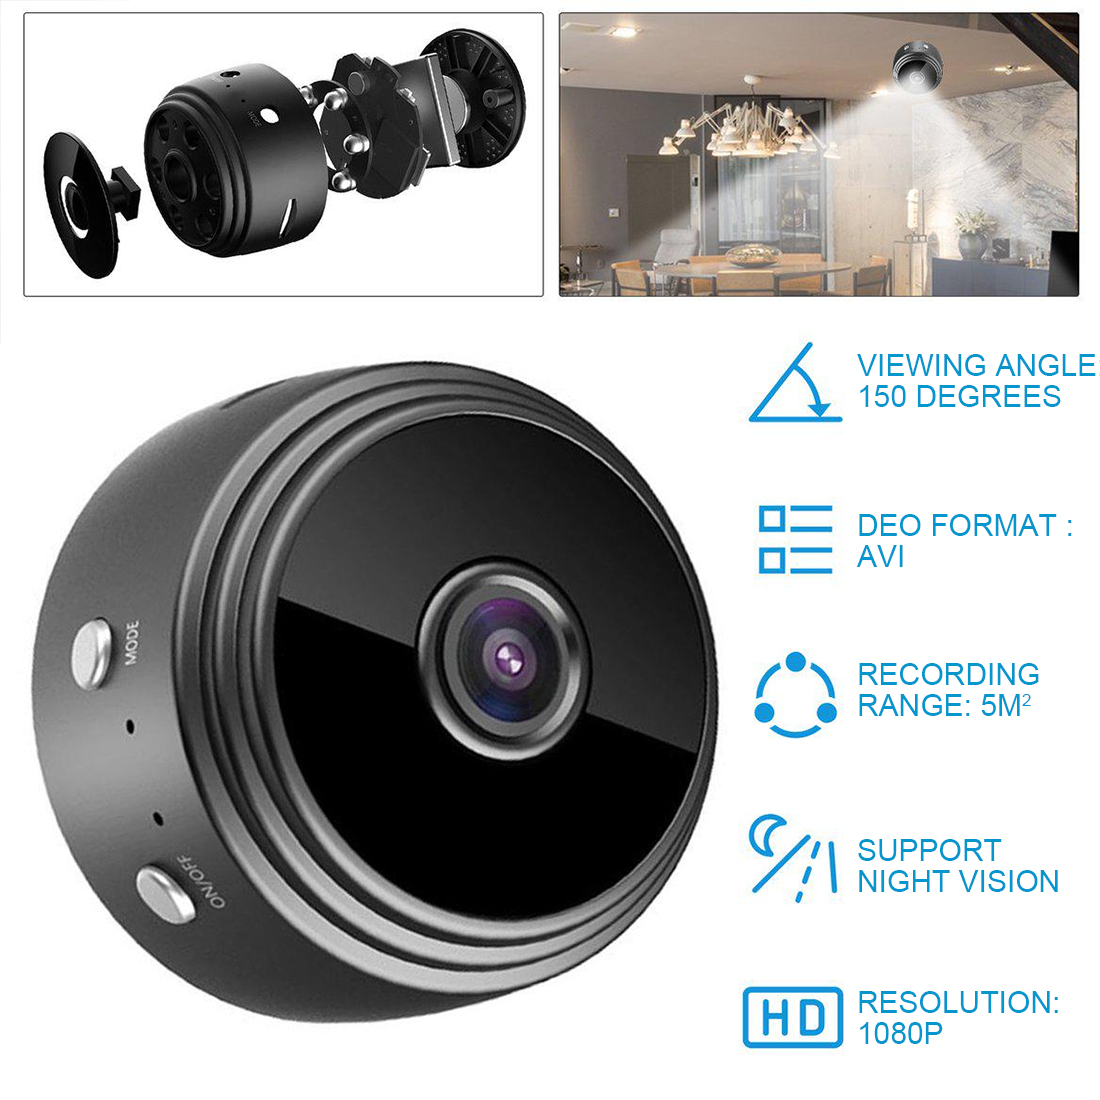 1080P Mini Wifi Camera A9 Wireless Camera Home Security Surveillance Camera Motion Detection IR Night Vision App Remote Monitor